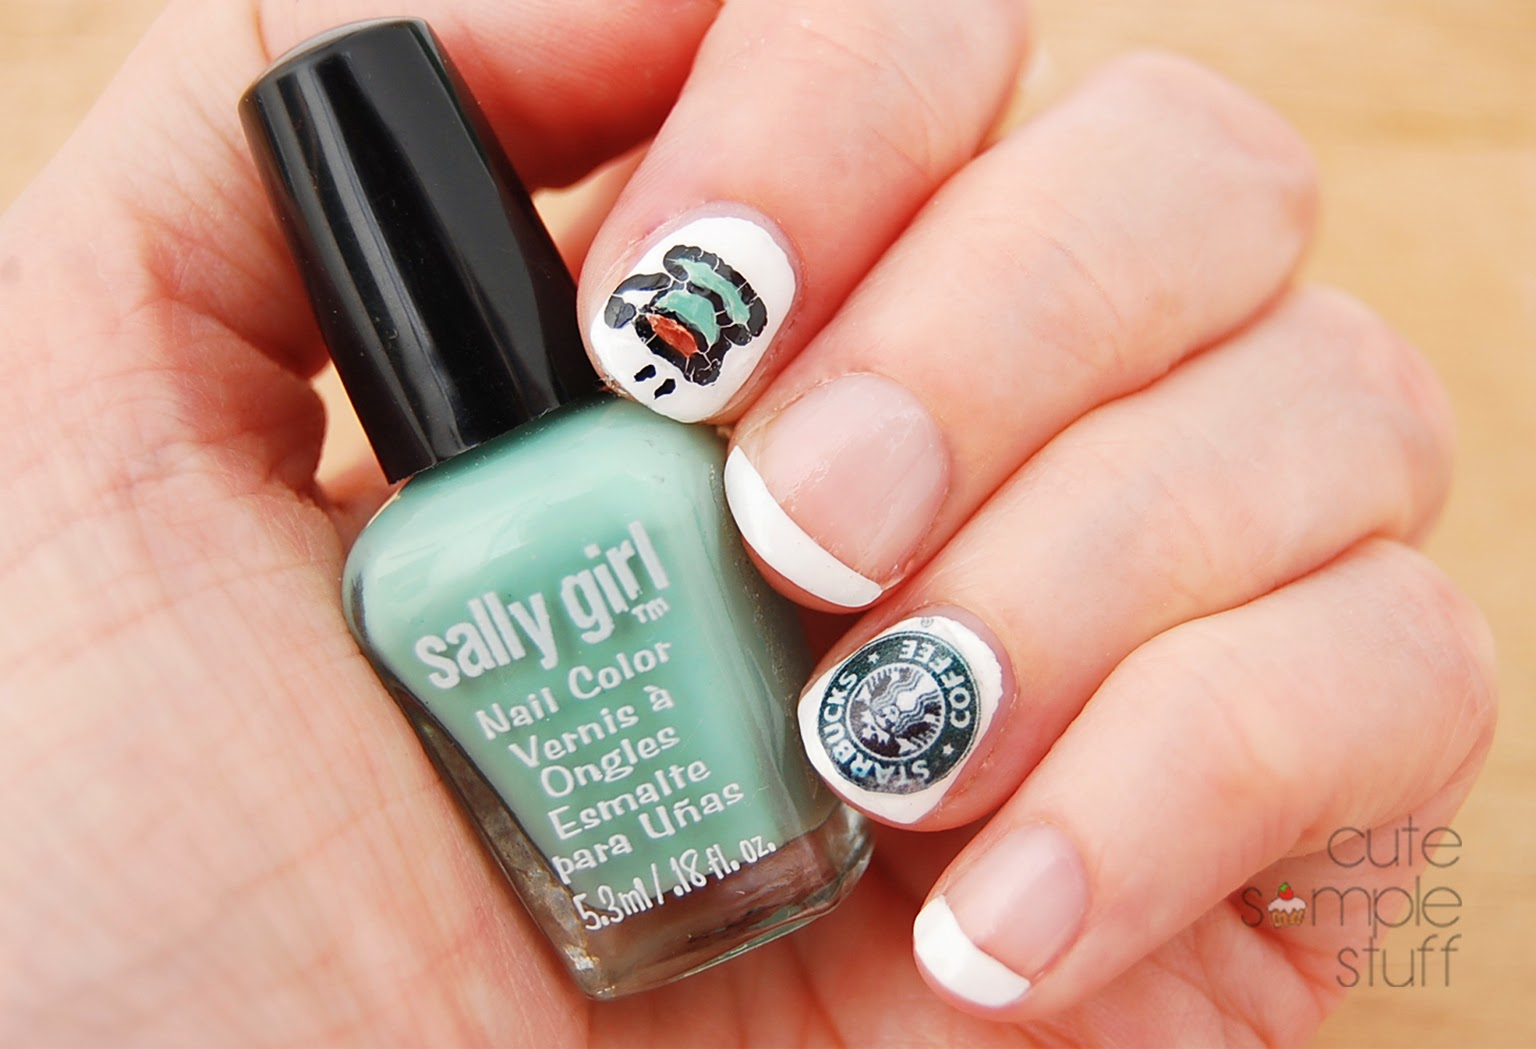 CUTE SIMPLE STUFF: Monday Mani: Starbucks Coffee Inspired Nails {2-in-1}